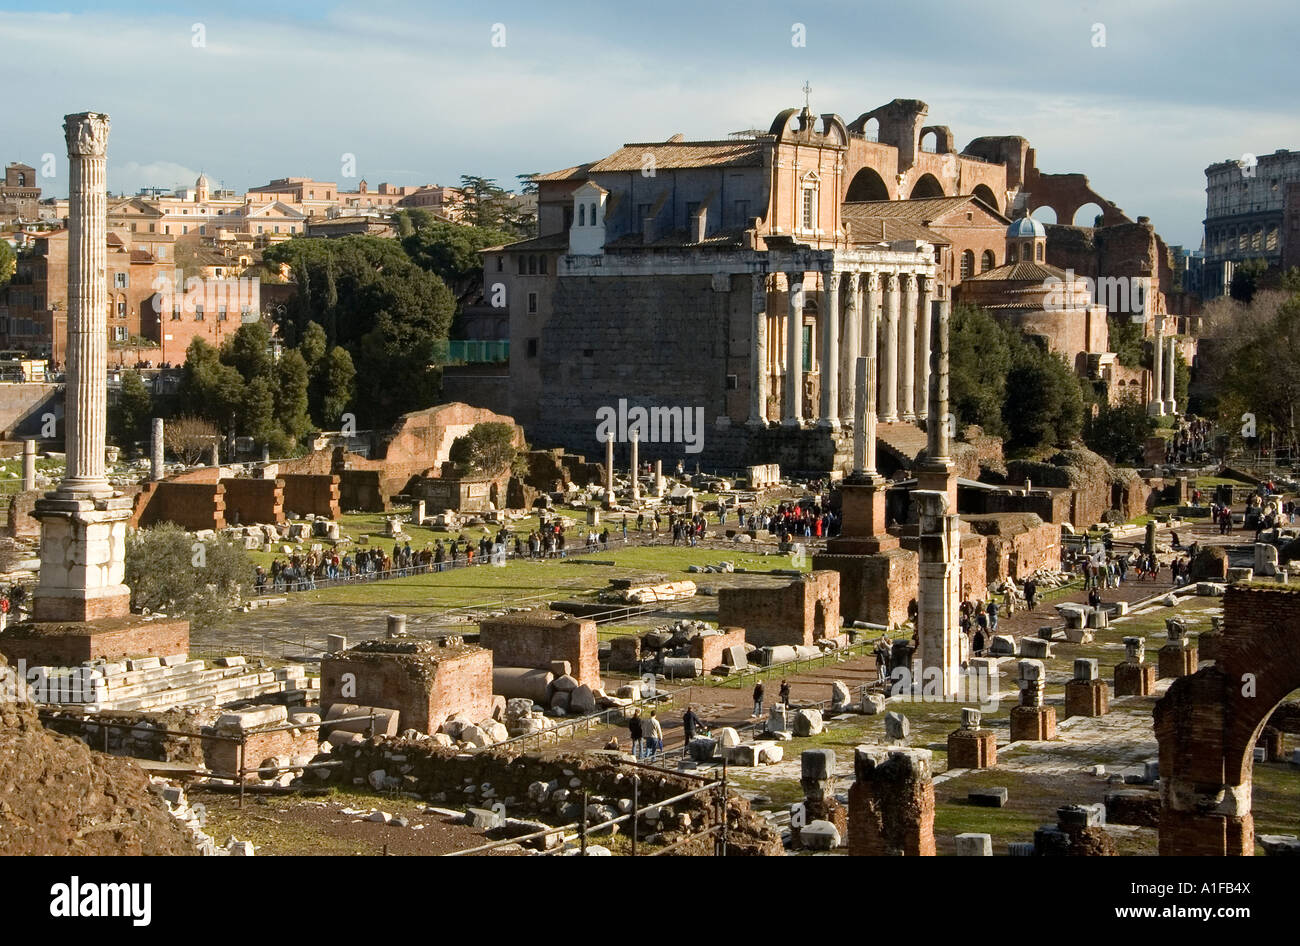 at the ancient Roman forum site, Rome Italy - Stock Image